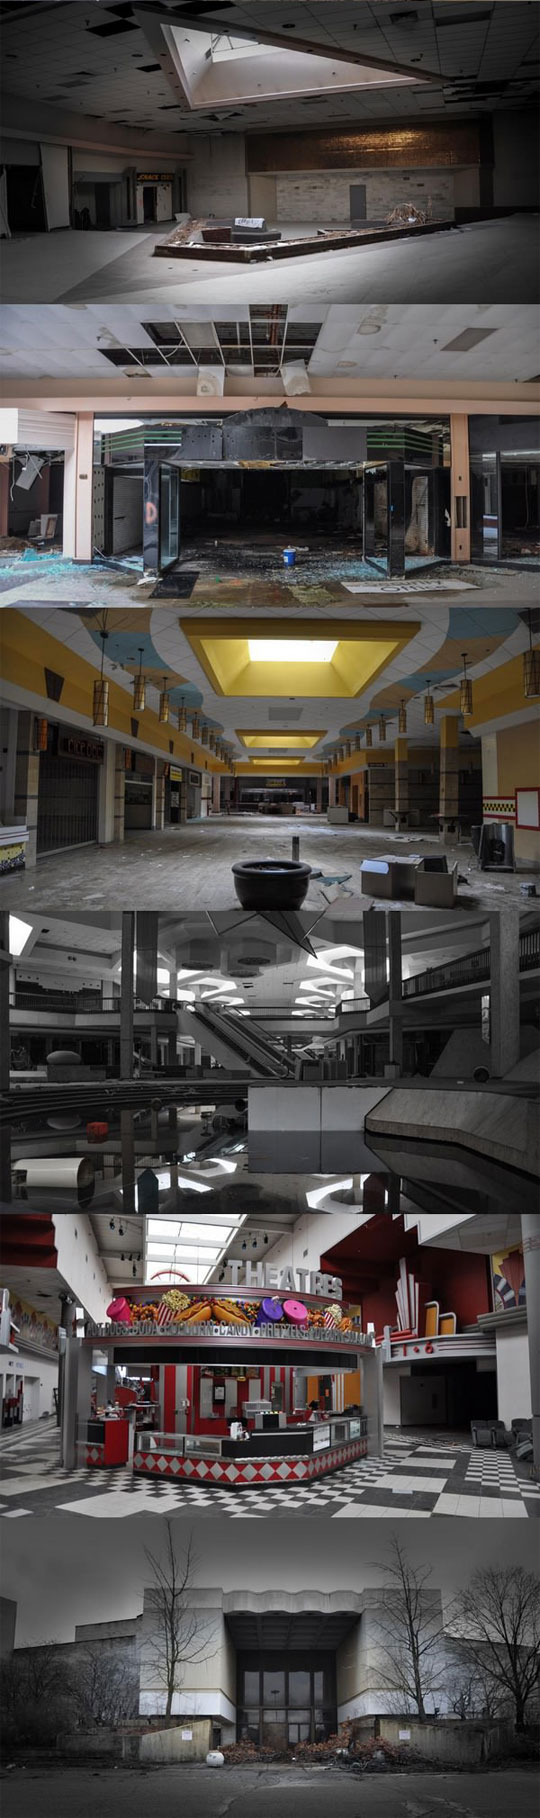 cool-abandoned-mall-halls-dirty